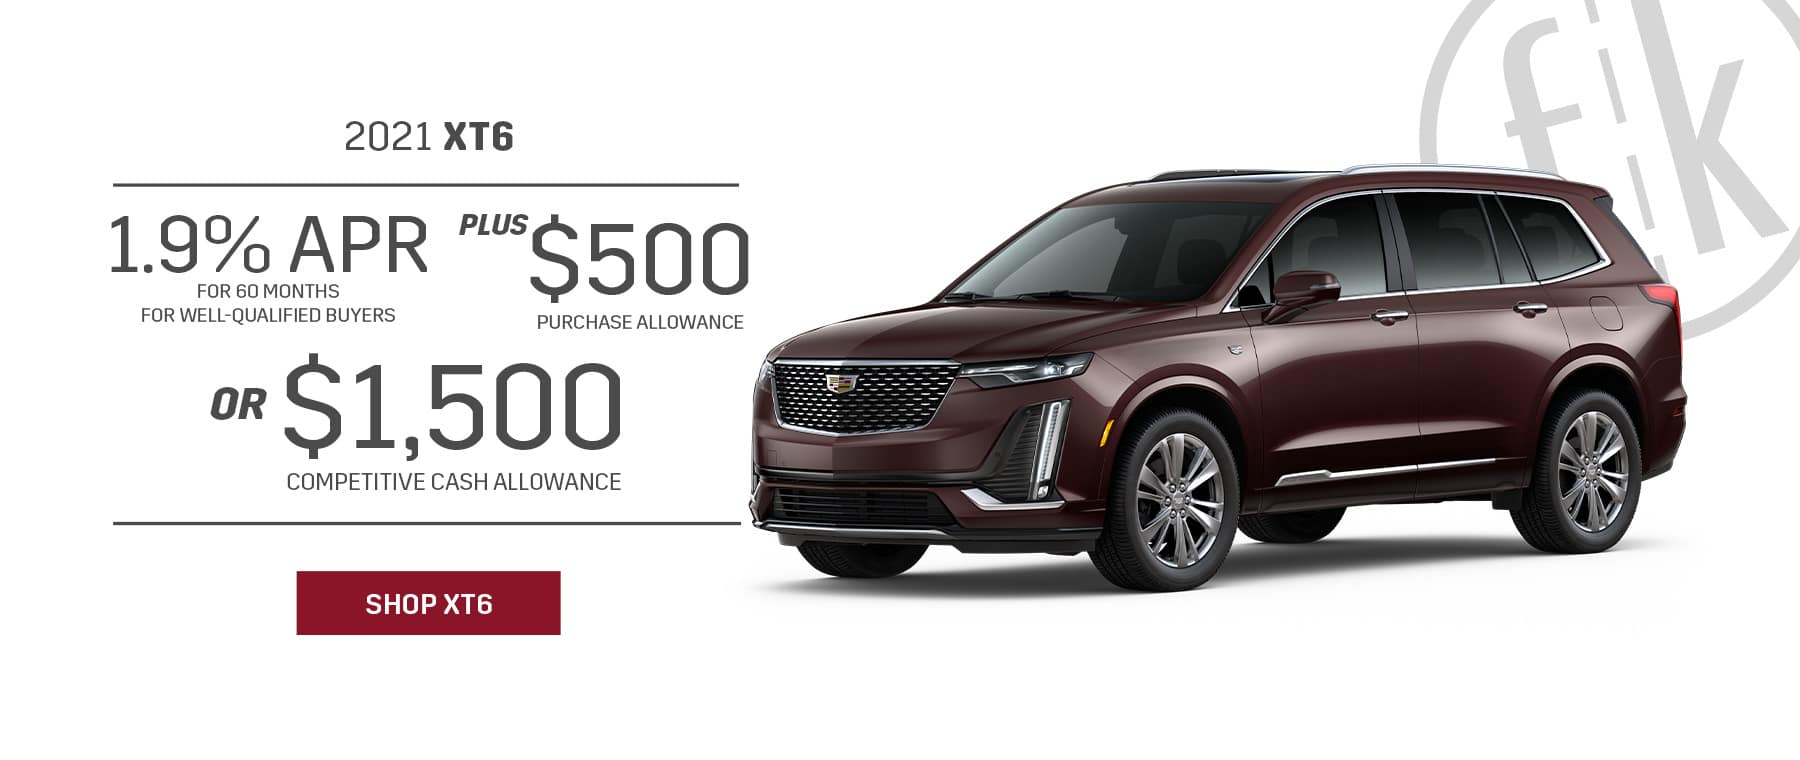 2021 XT6 1.9% for 60 mos PLUS $500 Purchase Allowance OR $1,500 Competitive Cash Allowance